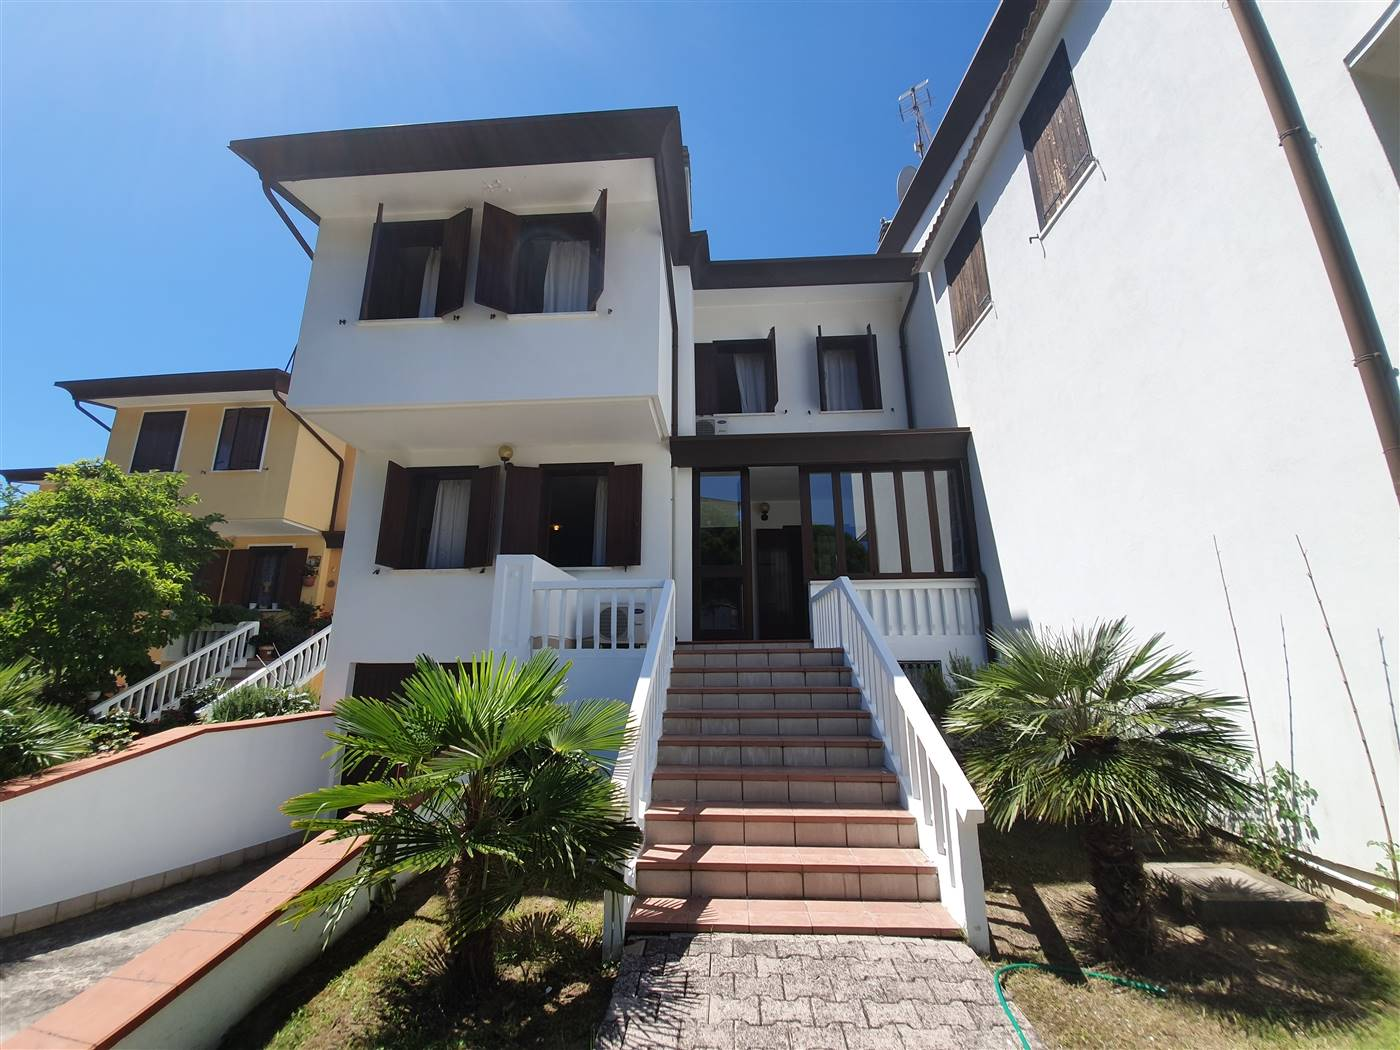 LIDO DI JESOLO, JESOLO, Terraced house for sale of 225 Sq. mt., Good condition, Heating Individual heating system, Energetic class: C, placed at